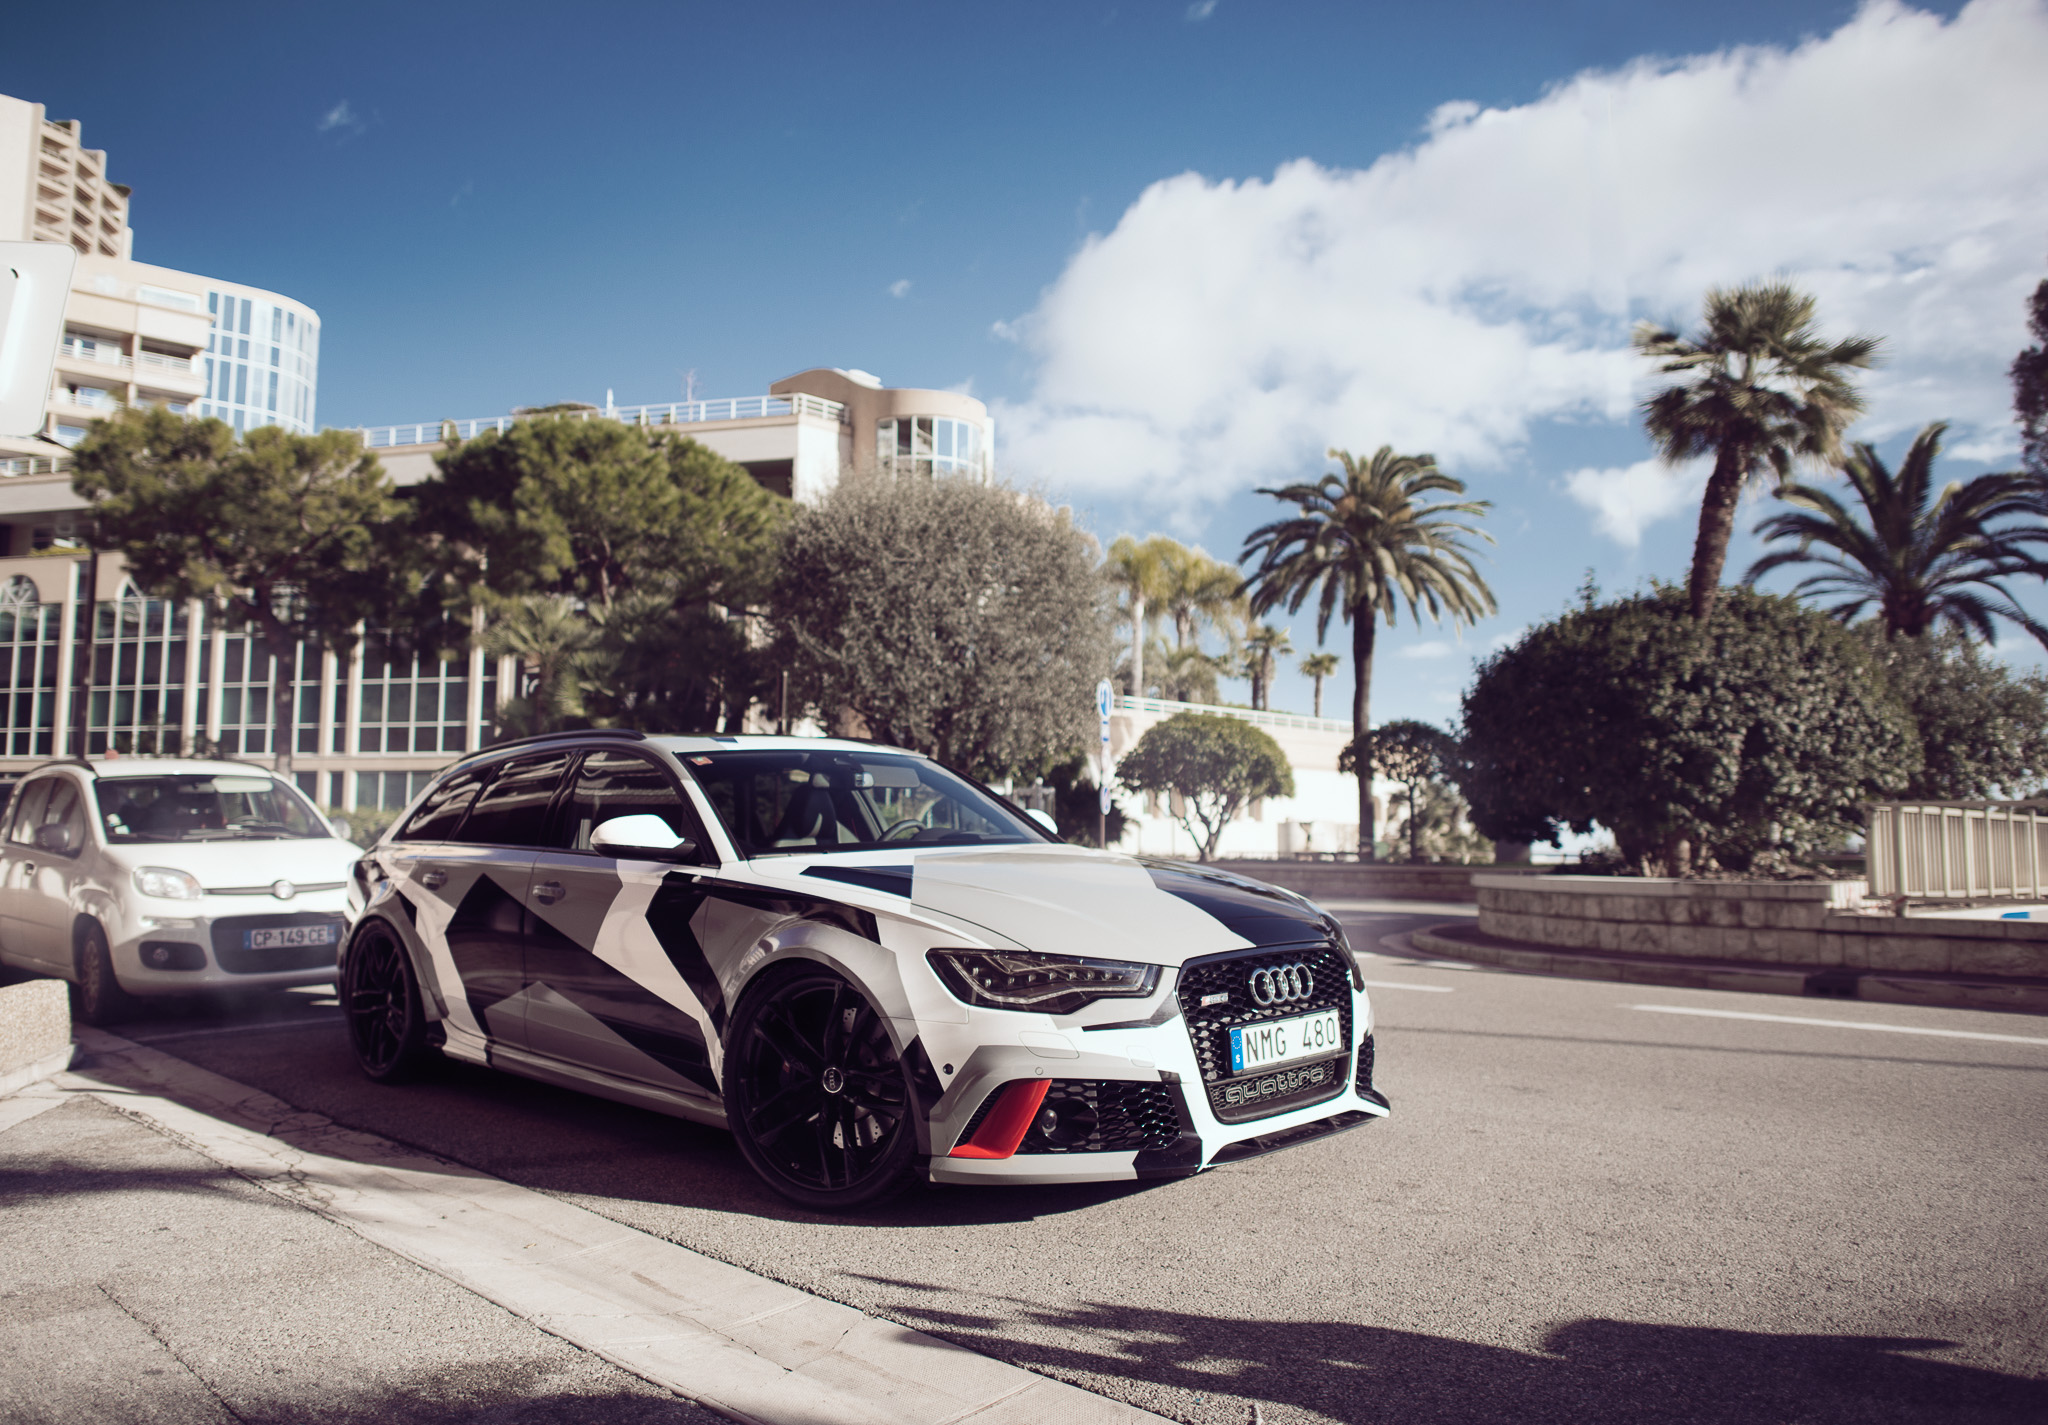 Jon Olsson S Awesome Rs6 Stancenation Form Gt Function